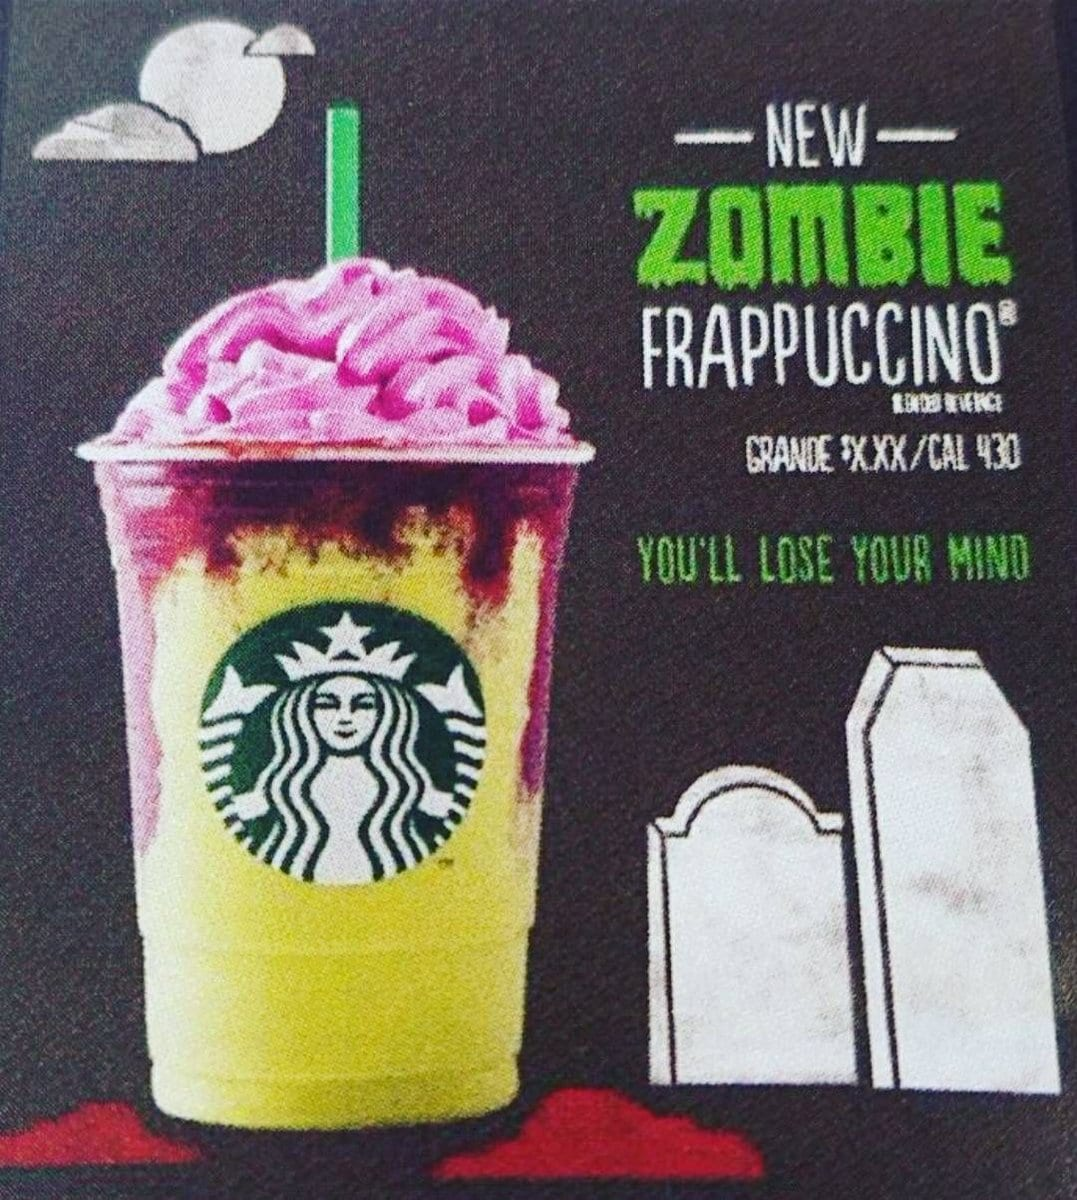 starbucks is releasing a zombie frappuccino just in time for